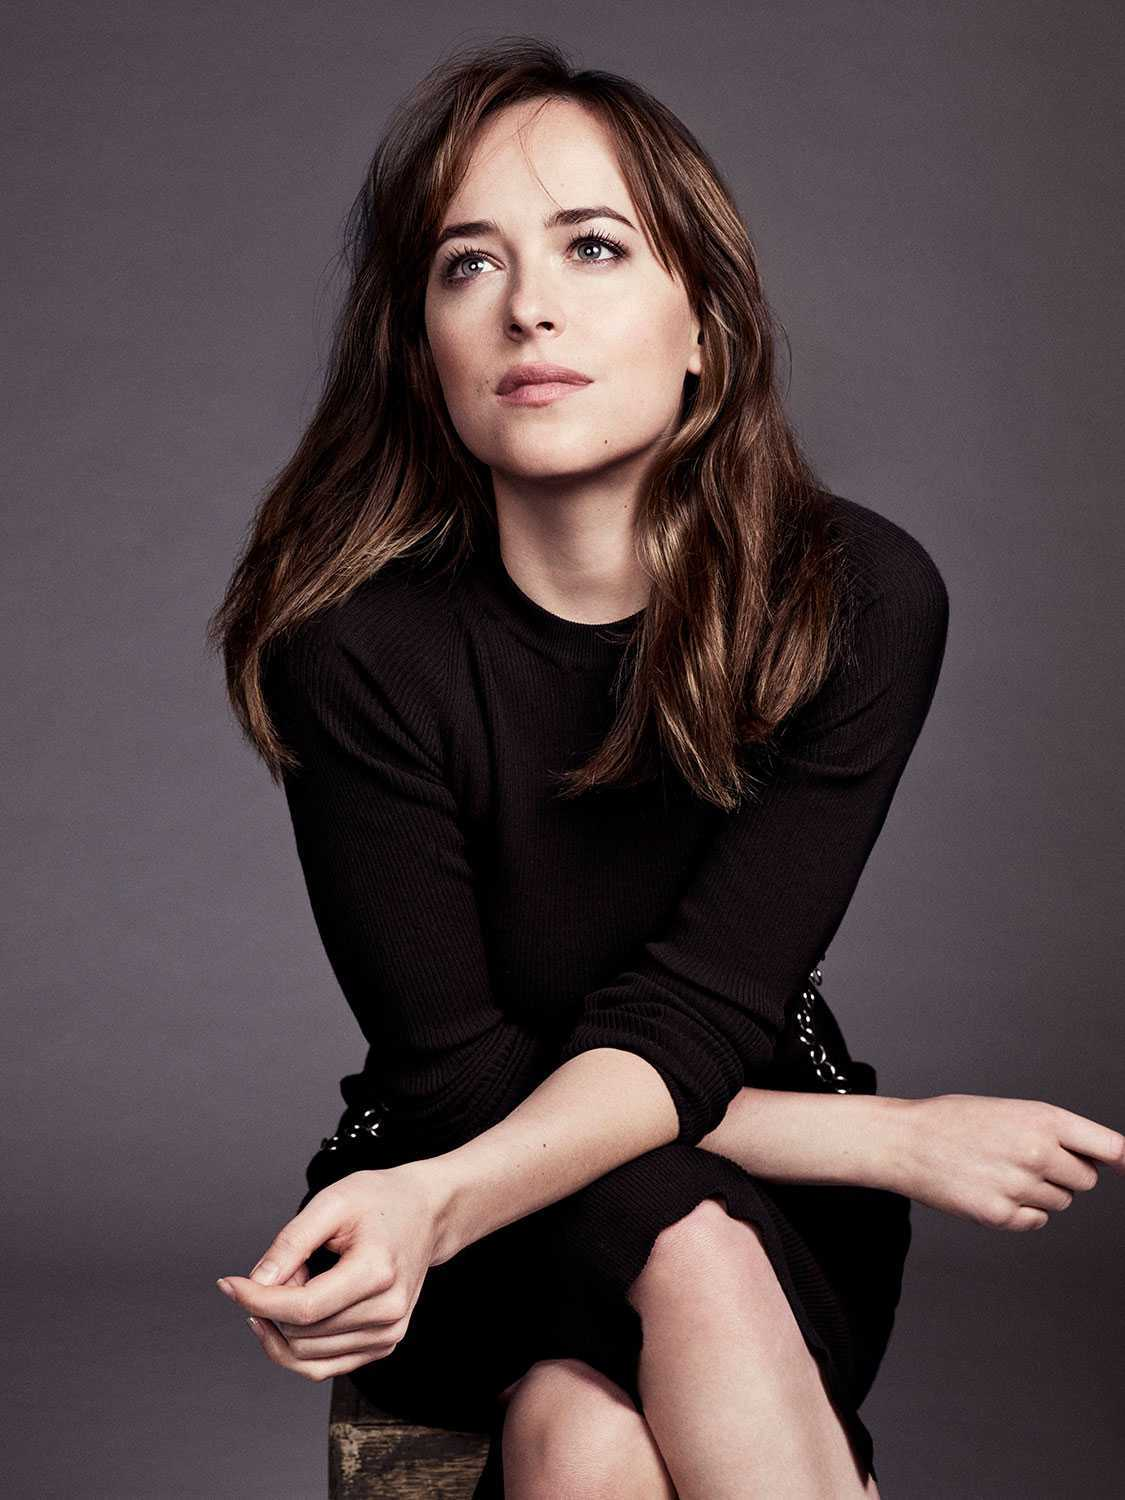 Dakota Johnson new images